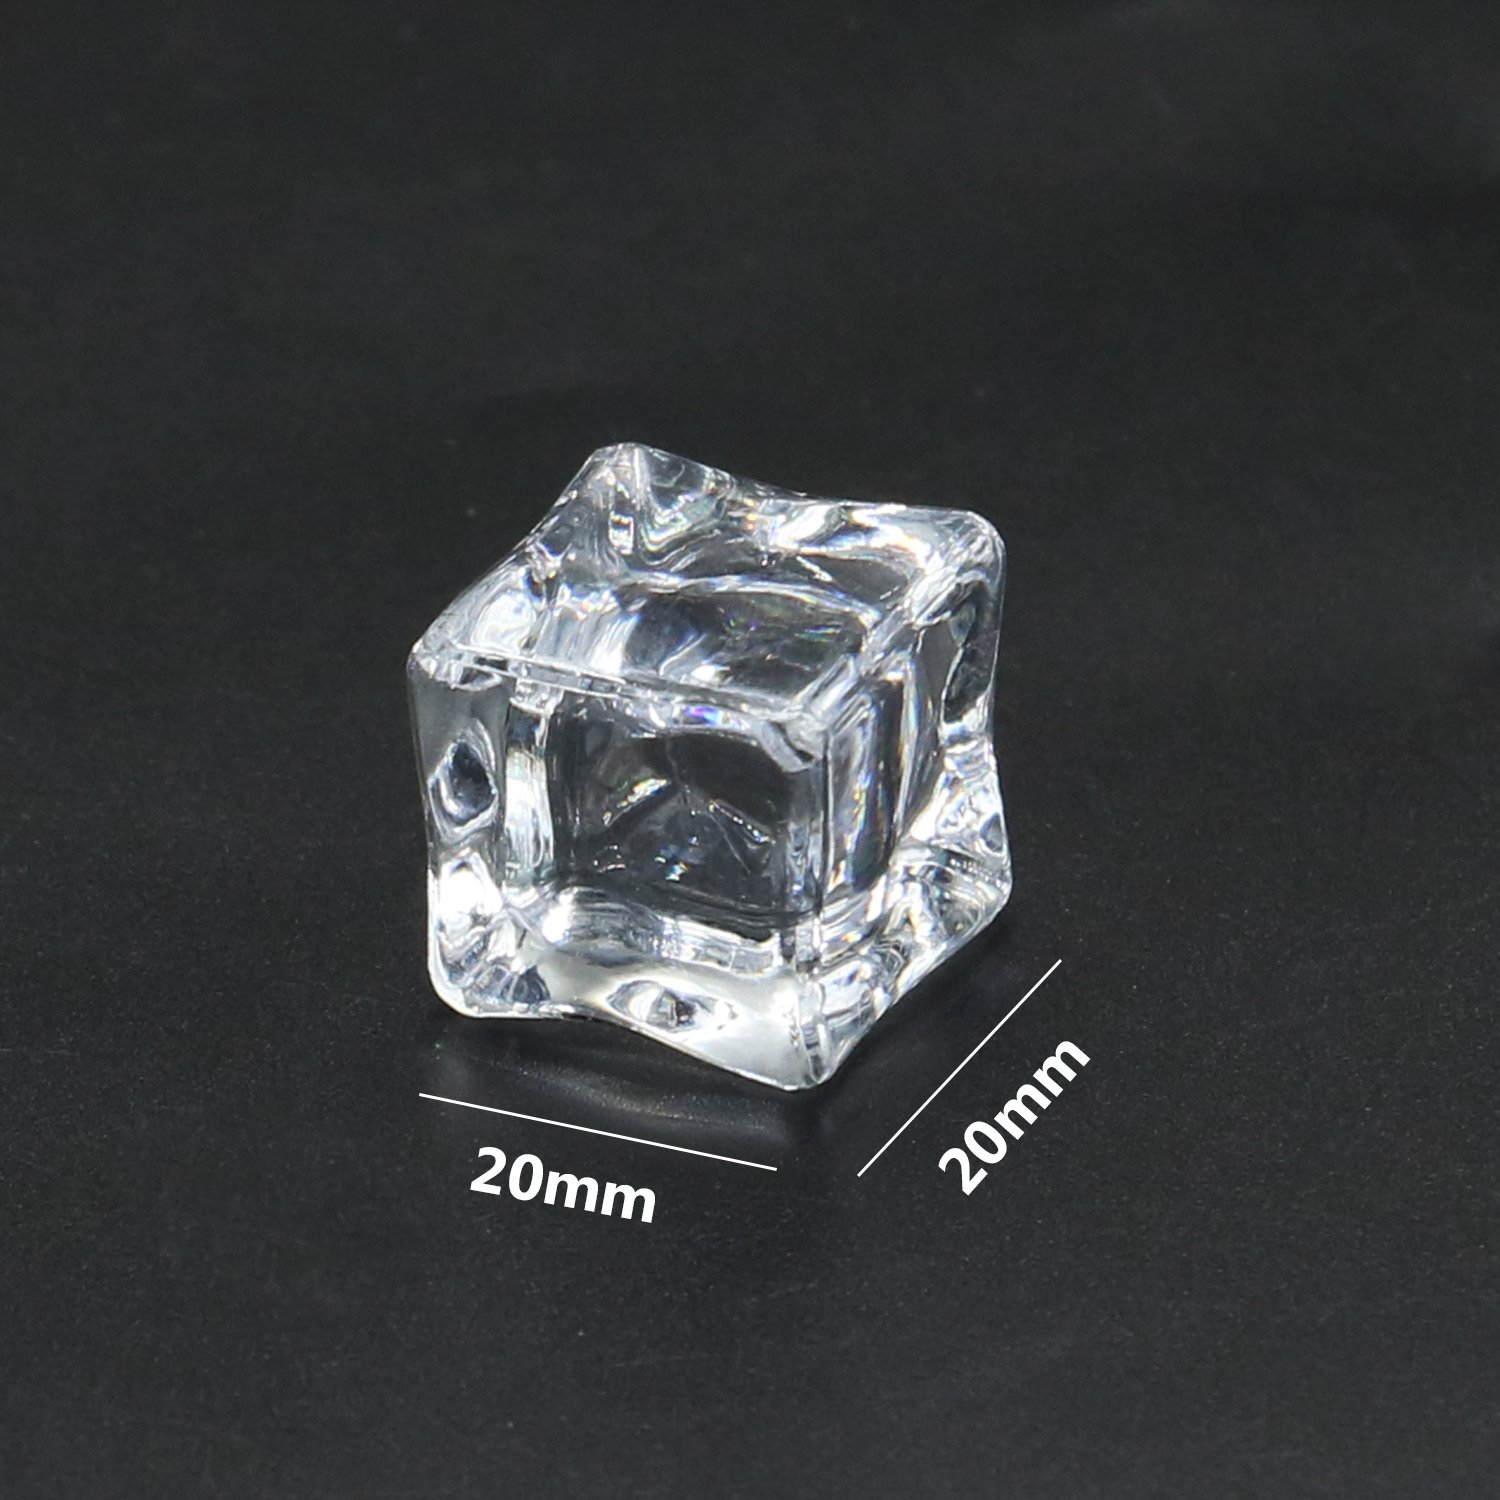 HUELE 20 Pcs Clear Square Acrylic Ice Cubes Fake Ice Cubes for Photography Props or Decorations 0.8